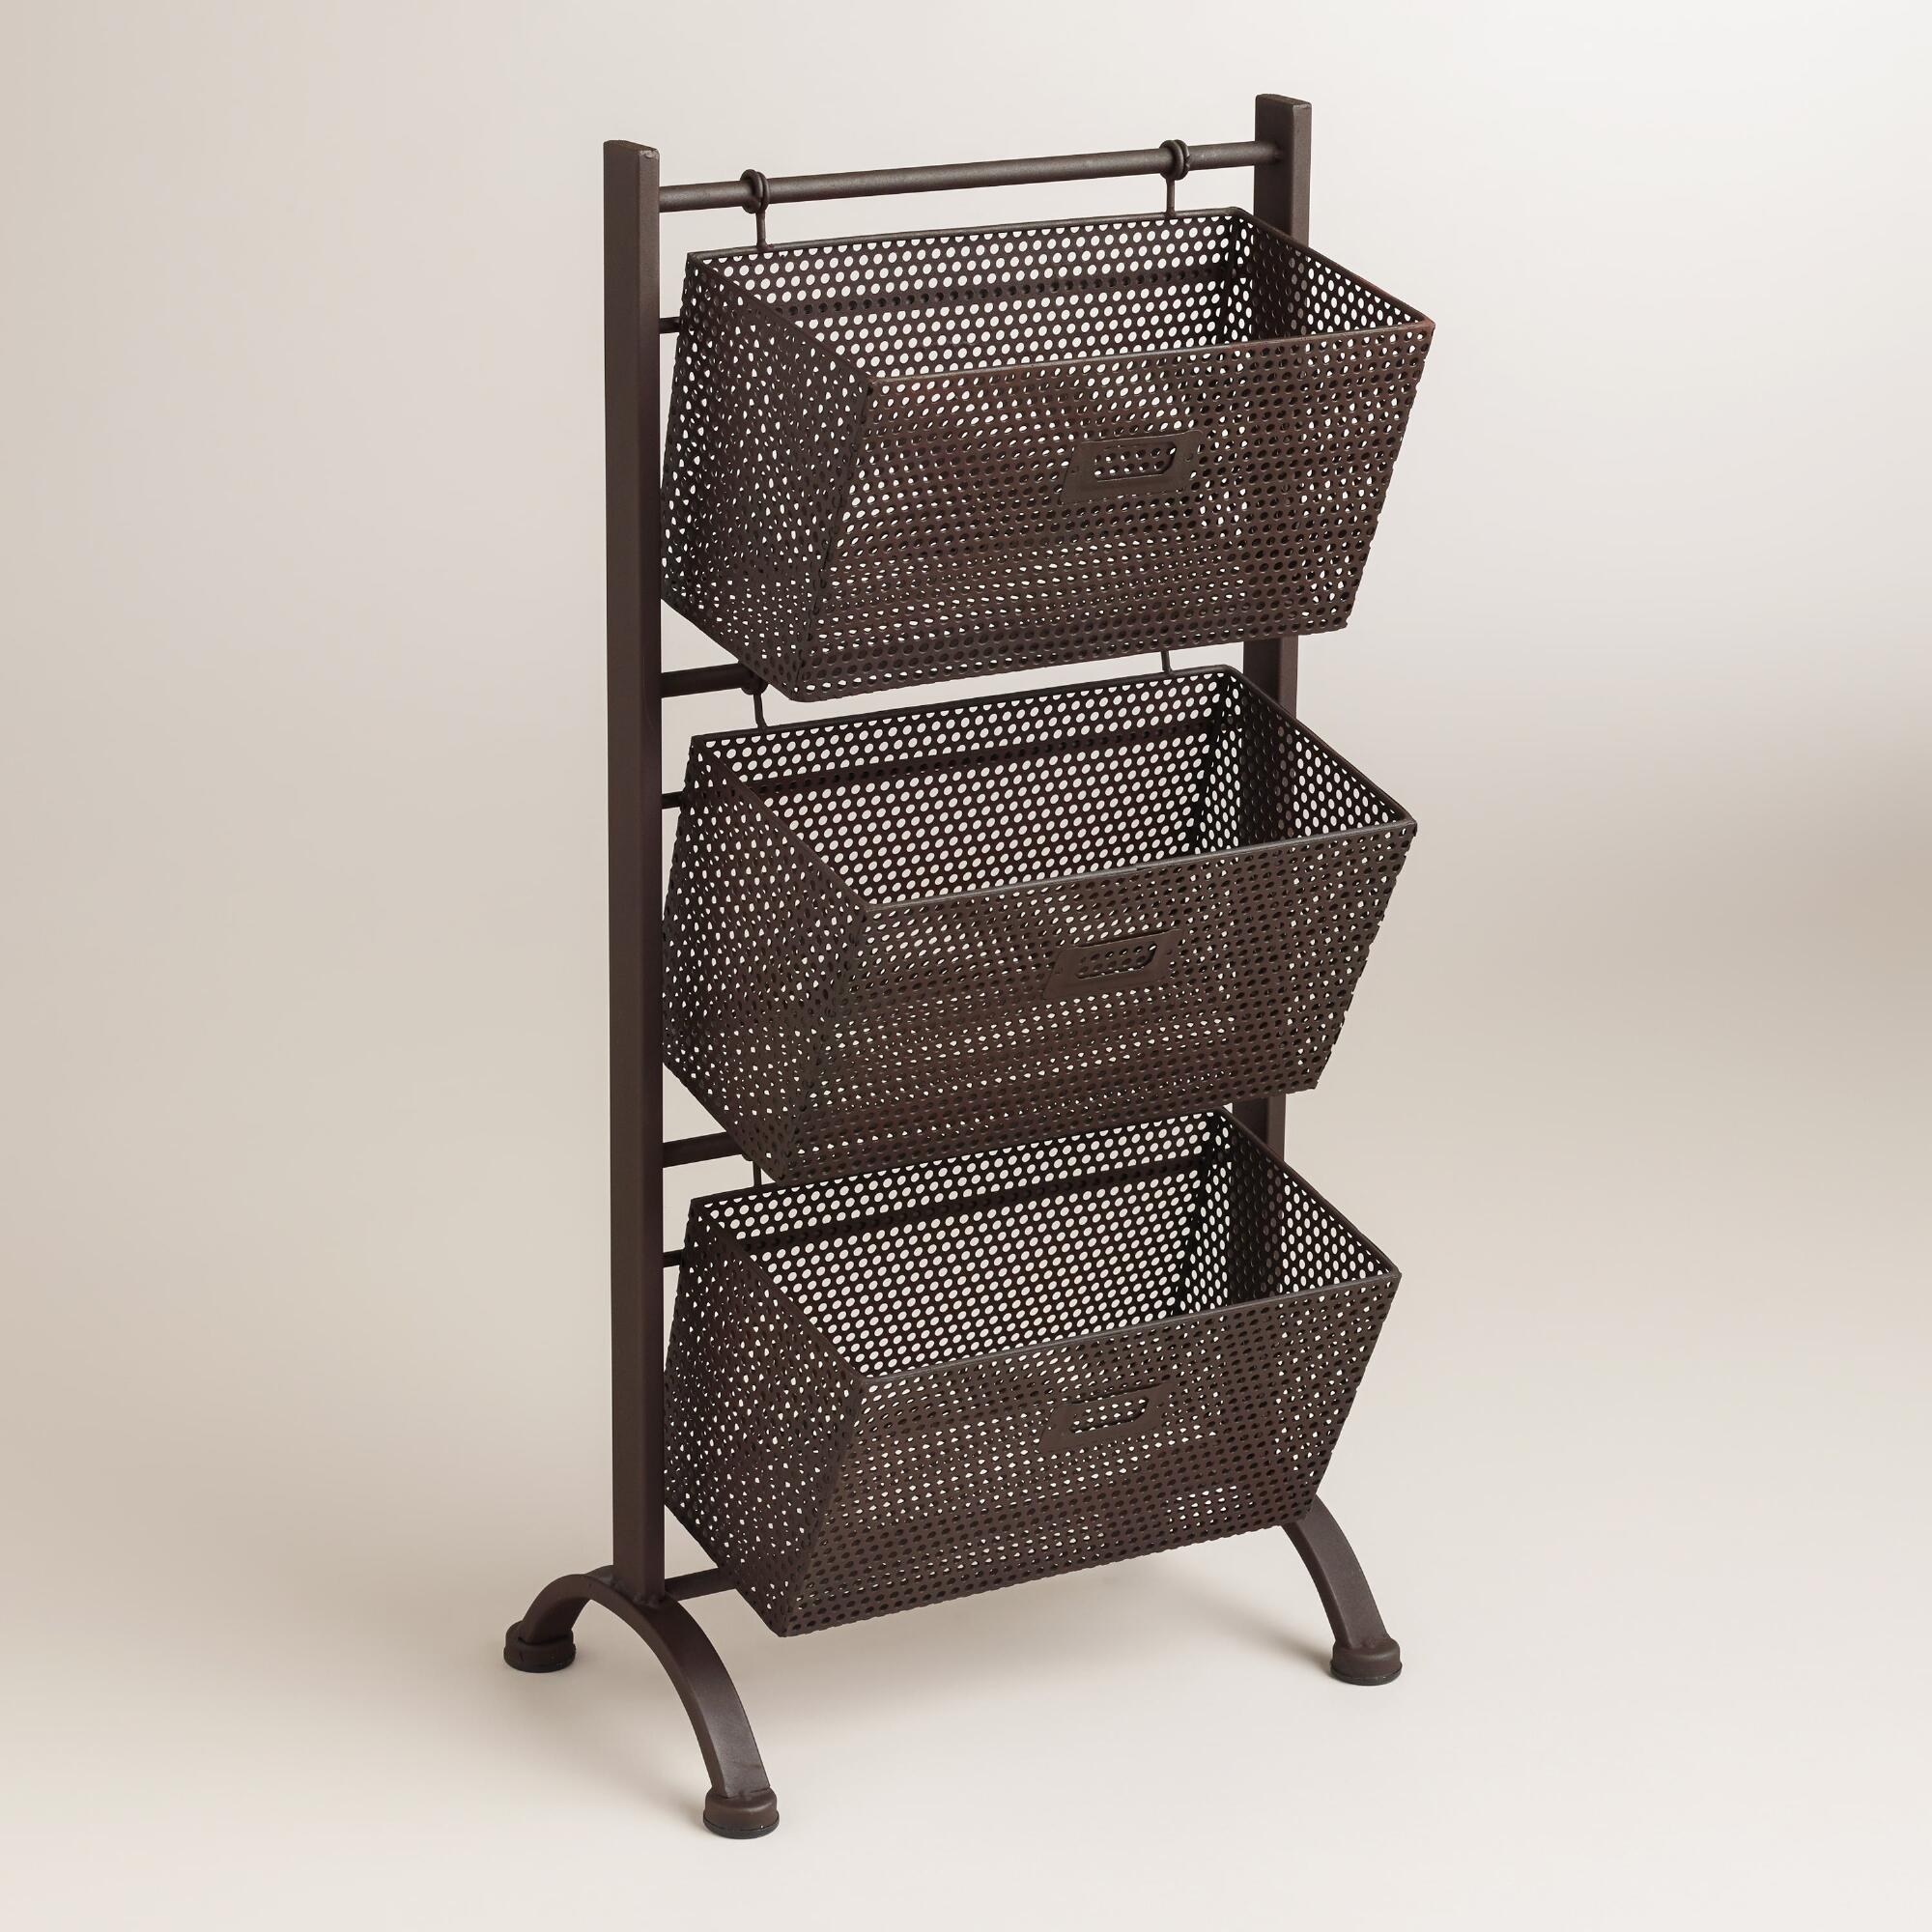 Delicieux Storage Tower With Baskets 1